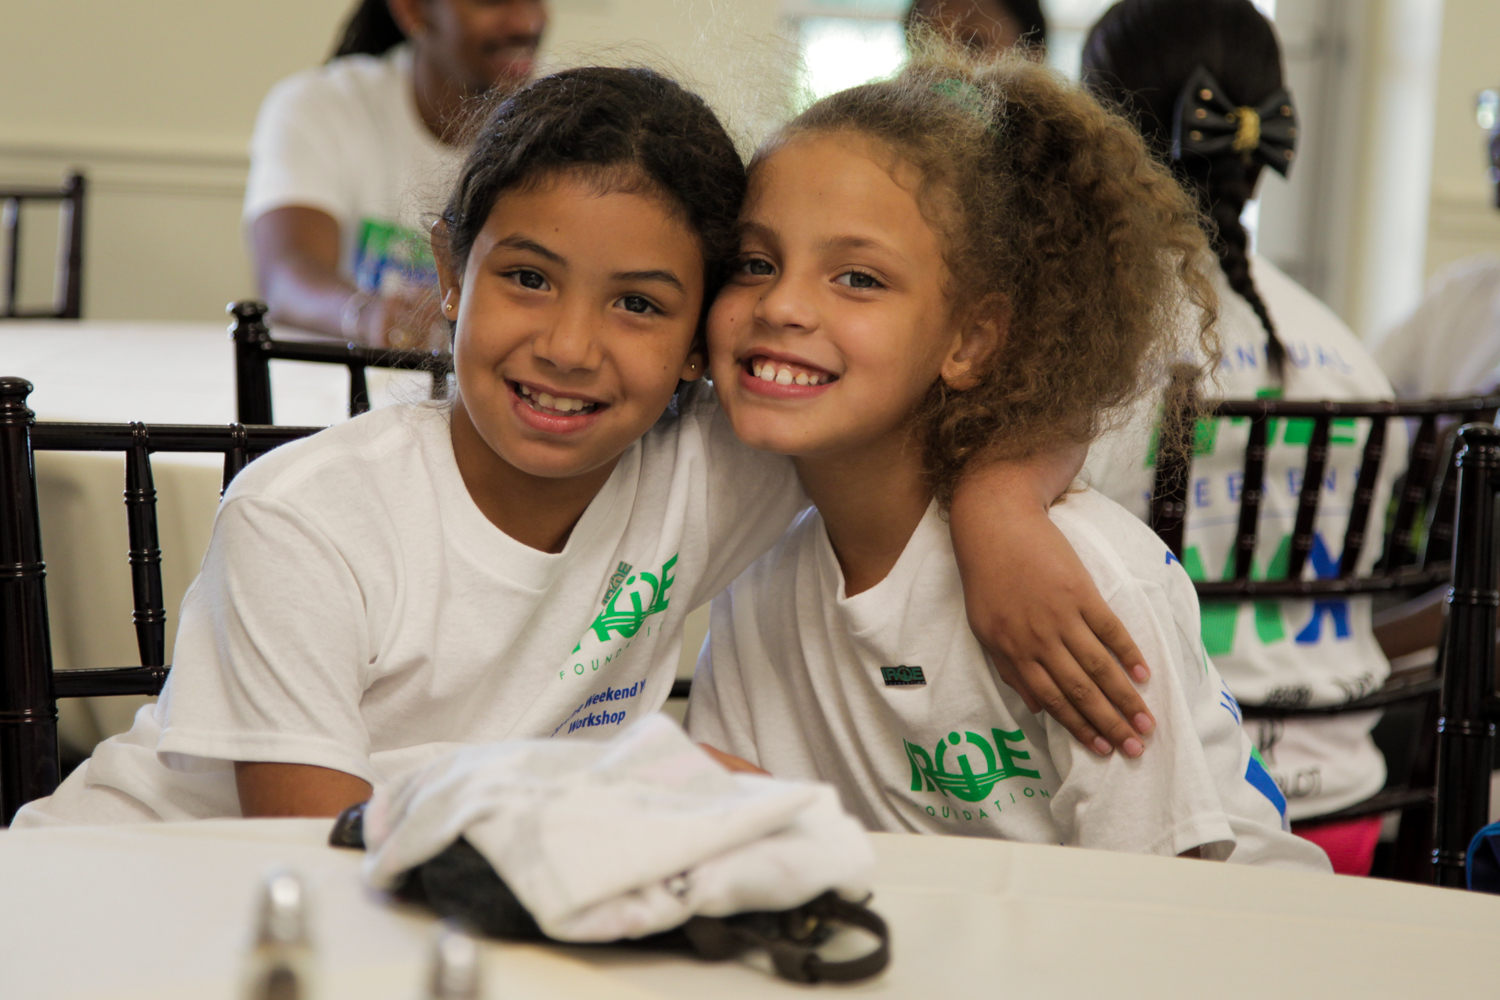 Youth Golf Clinic - Kids Smiling.jpg